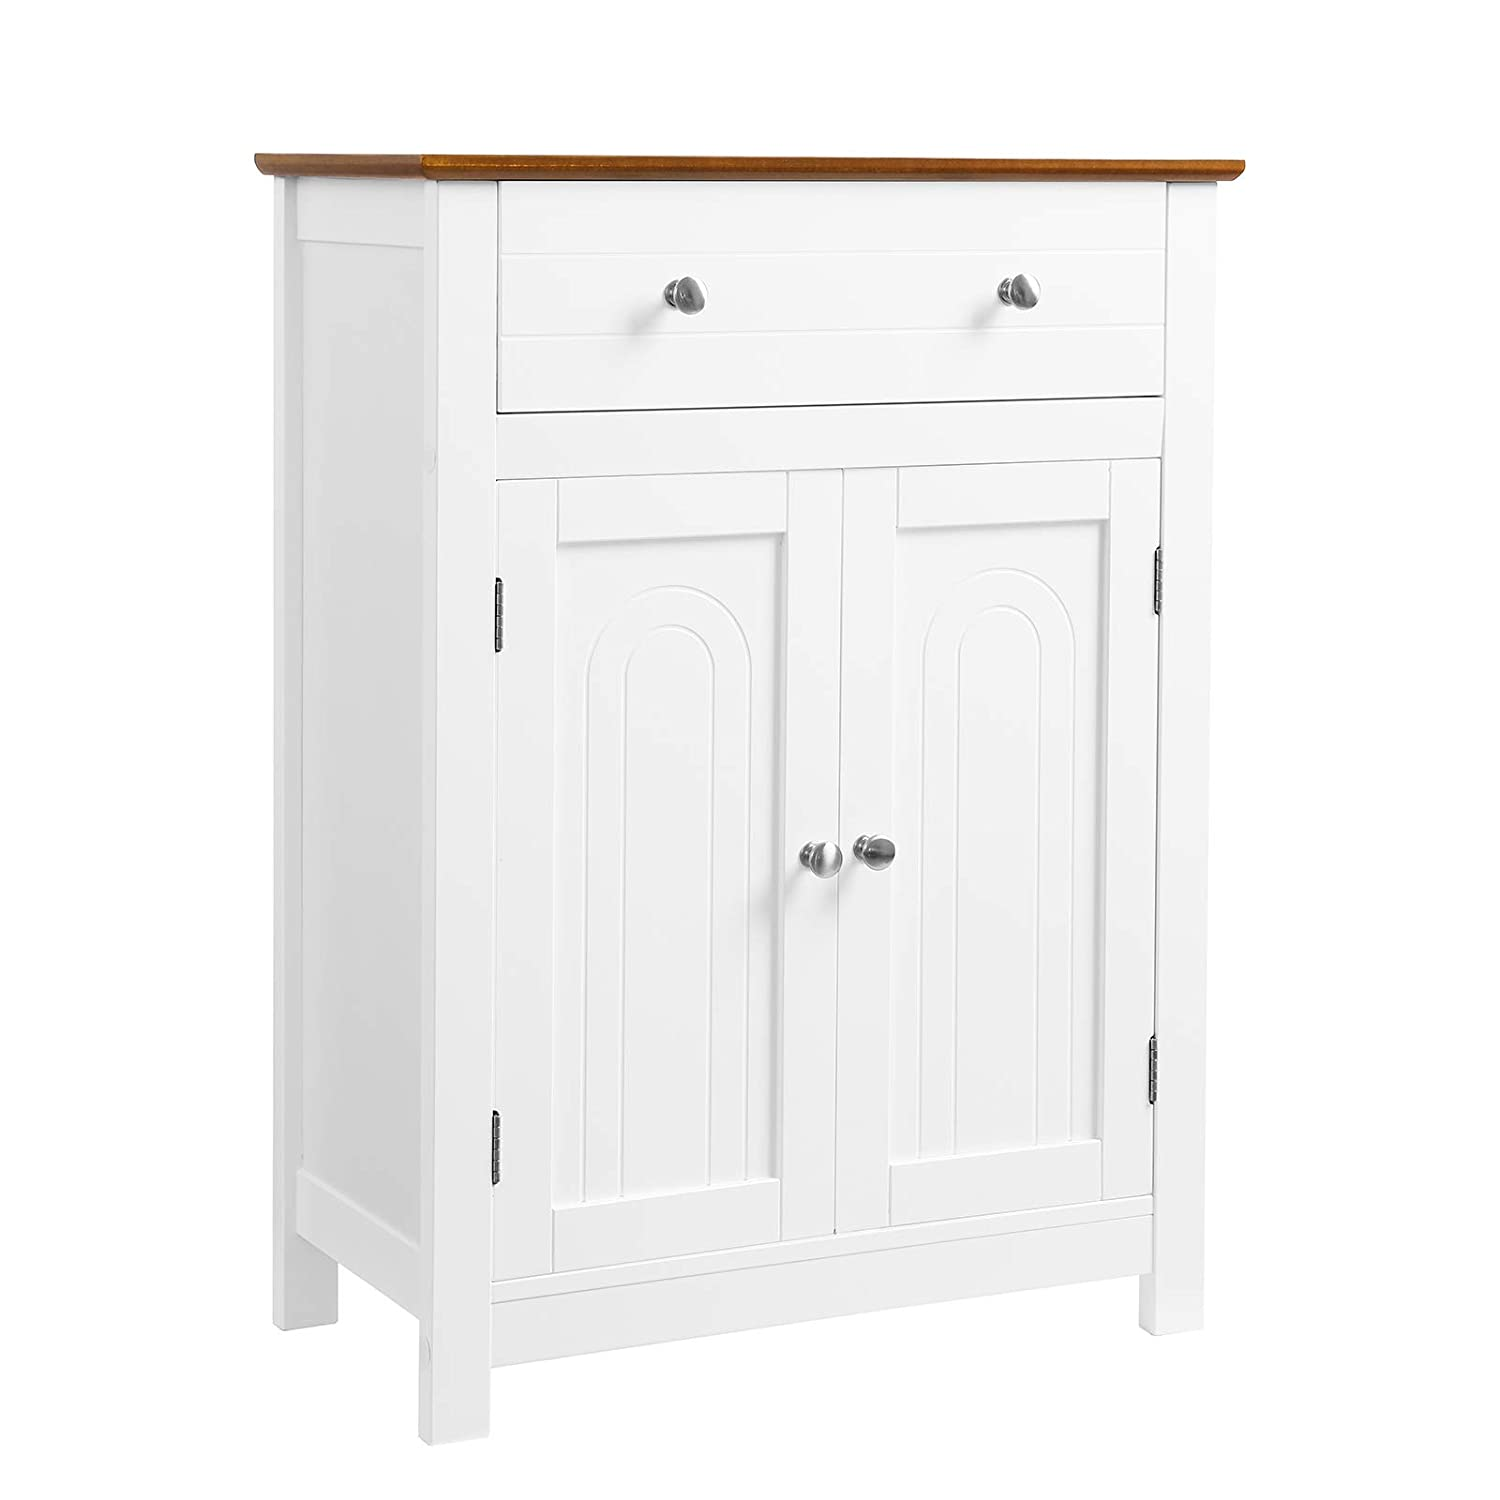 "VASAGLE Free Standing Bathroom Storage Cabinet with Drawer and Adjustable Shelf, Kitchen Cupboard, Wooden Entryway Floor Cabinet, 23.6"" L x 11.8"" W x 31.5"" H, White, Brown UBBC62WT"